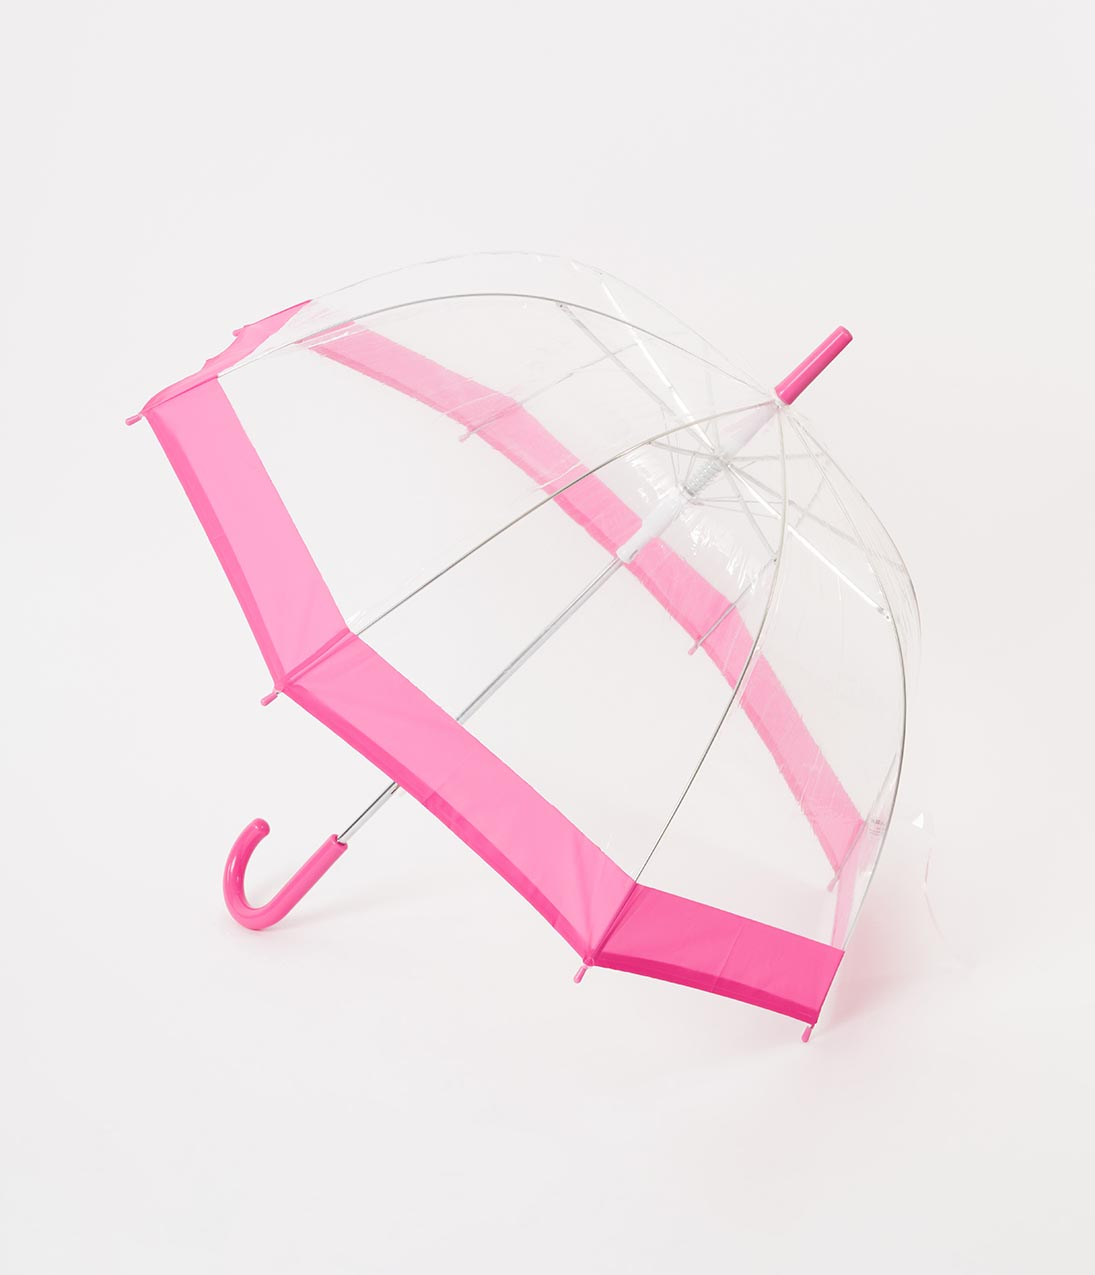 Vintage Style Parasols and Umbrellas Pink  Clear Dome Umbrella $32.00 AT vintagedancer.com